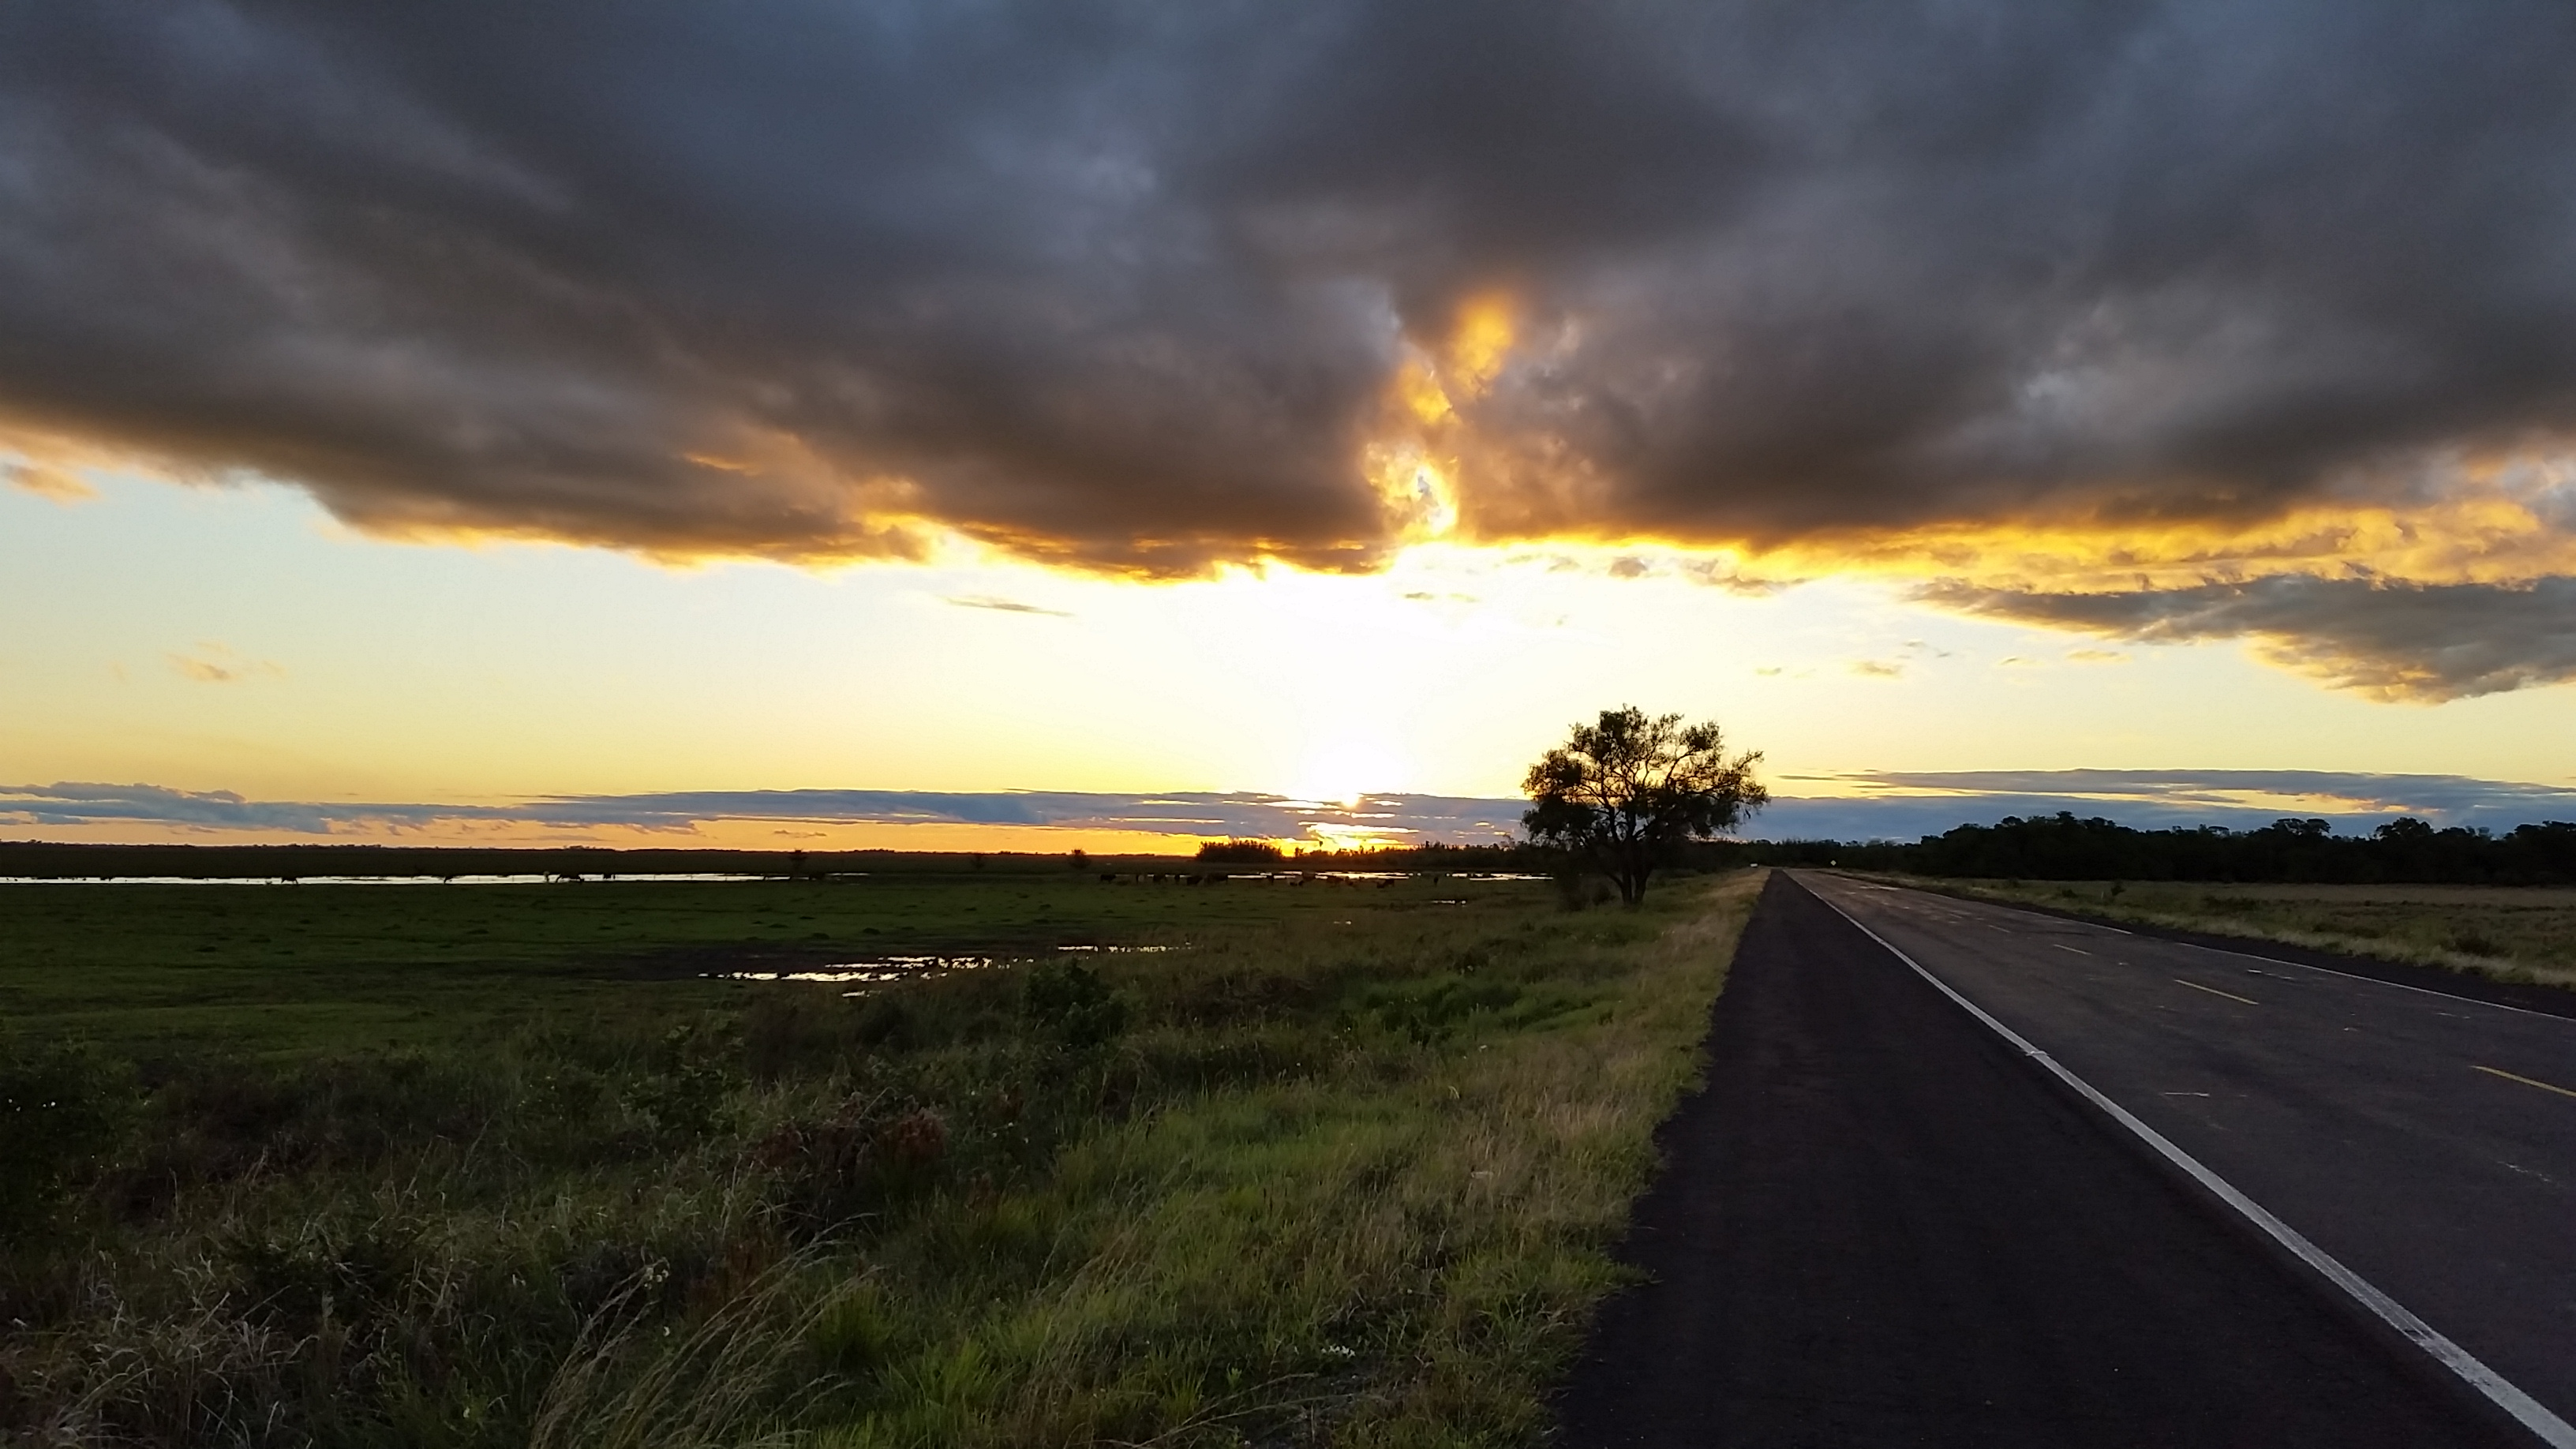 Road from Asuncion to Pilar, Paraguay (Photo credit: Paul Blom)